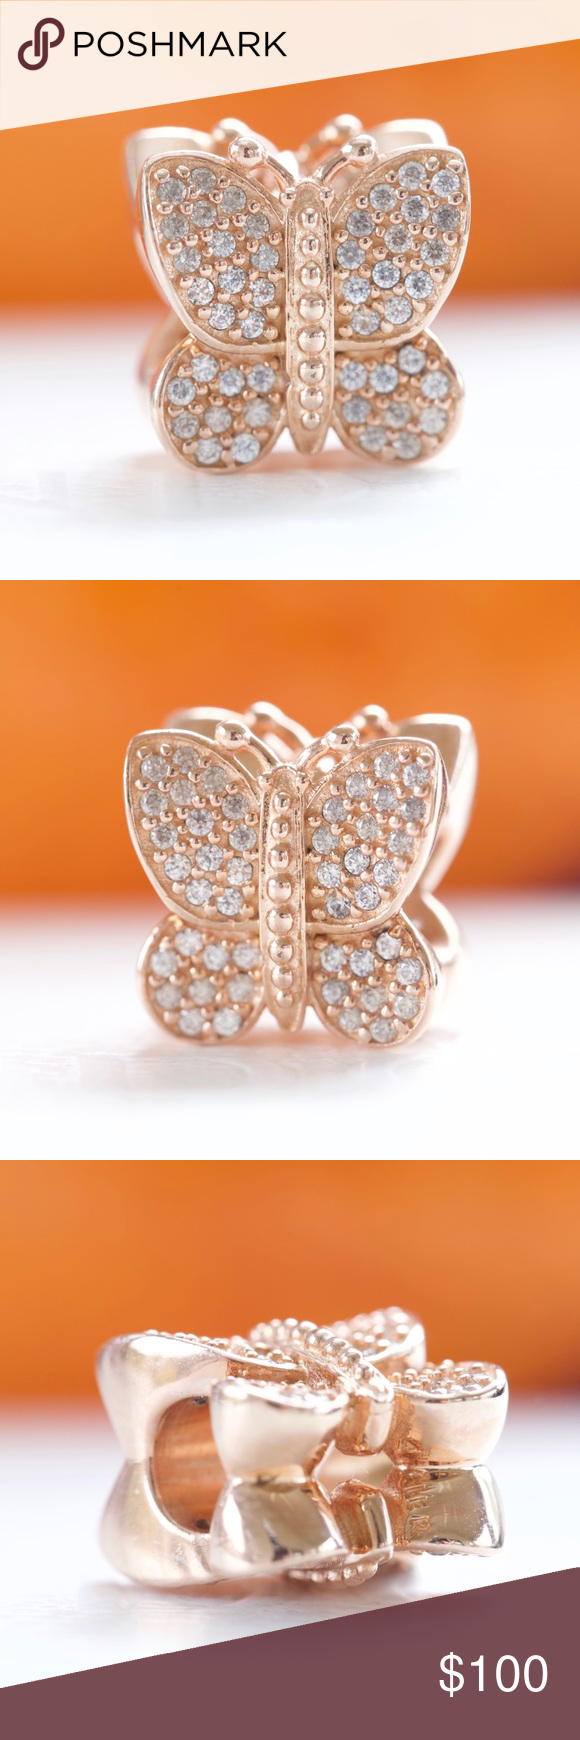 8cbae8d18 Pandora Rose Gold Sparkling Butterfly Pandora Rose Sparkling Butterfly  Retired 781257CZ 100% Authentic, New with tags , will come in Pandora box  Pandora ...